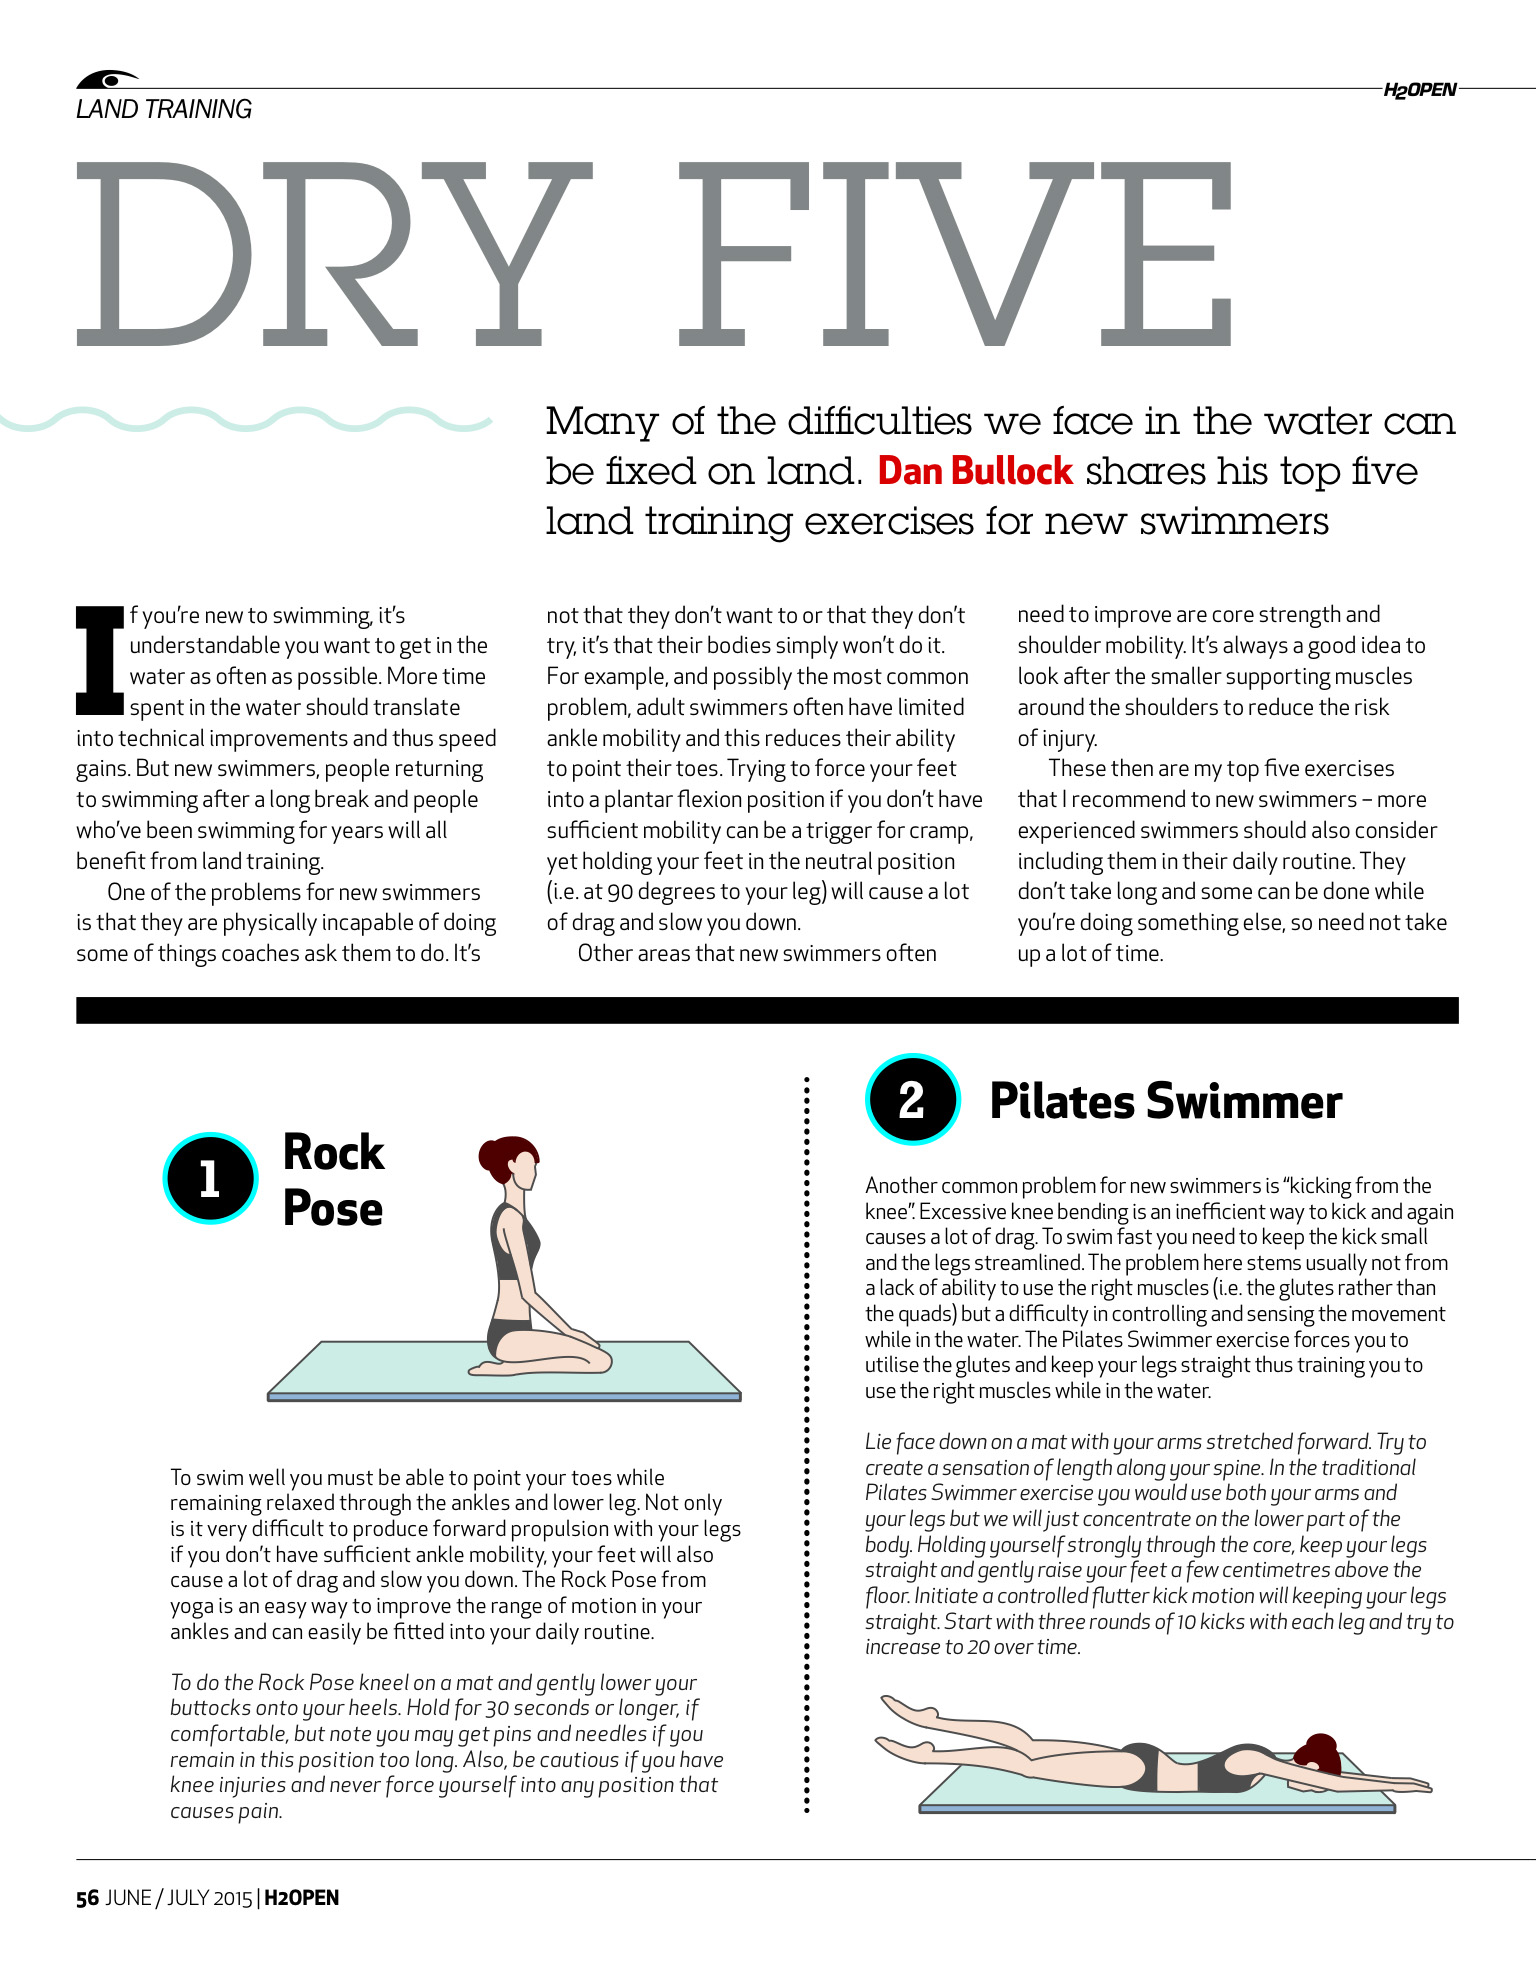 Editorial work: tiny fitness illustrations for open water swimming magazine   H2Open: yoga, pilates, flexibility, strength, posture  .  Illustrations copyright Kate Madigan.